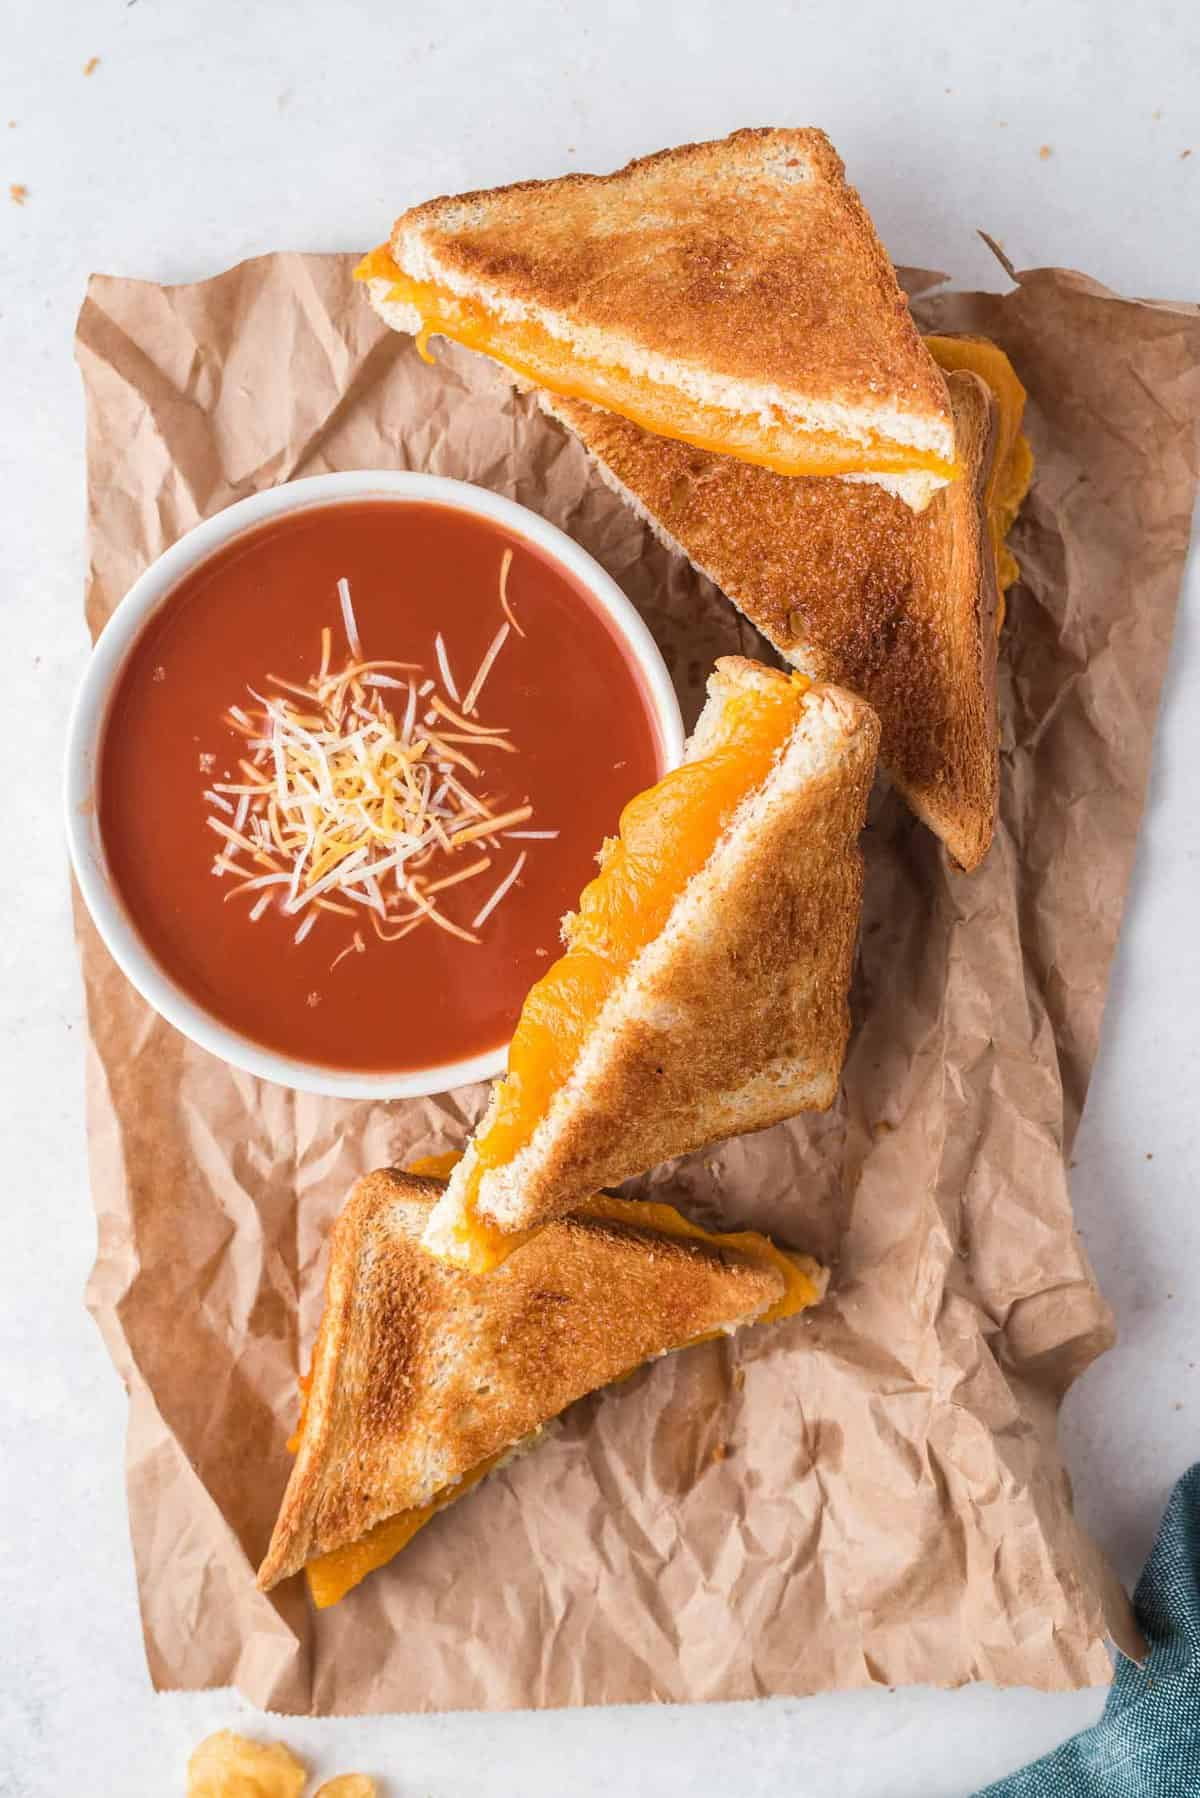 Grilled cheese sandwich halves, and tomato soup